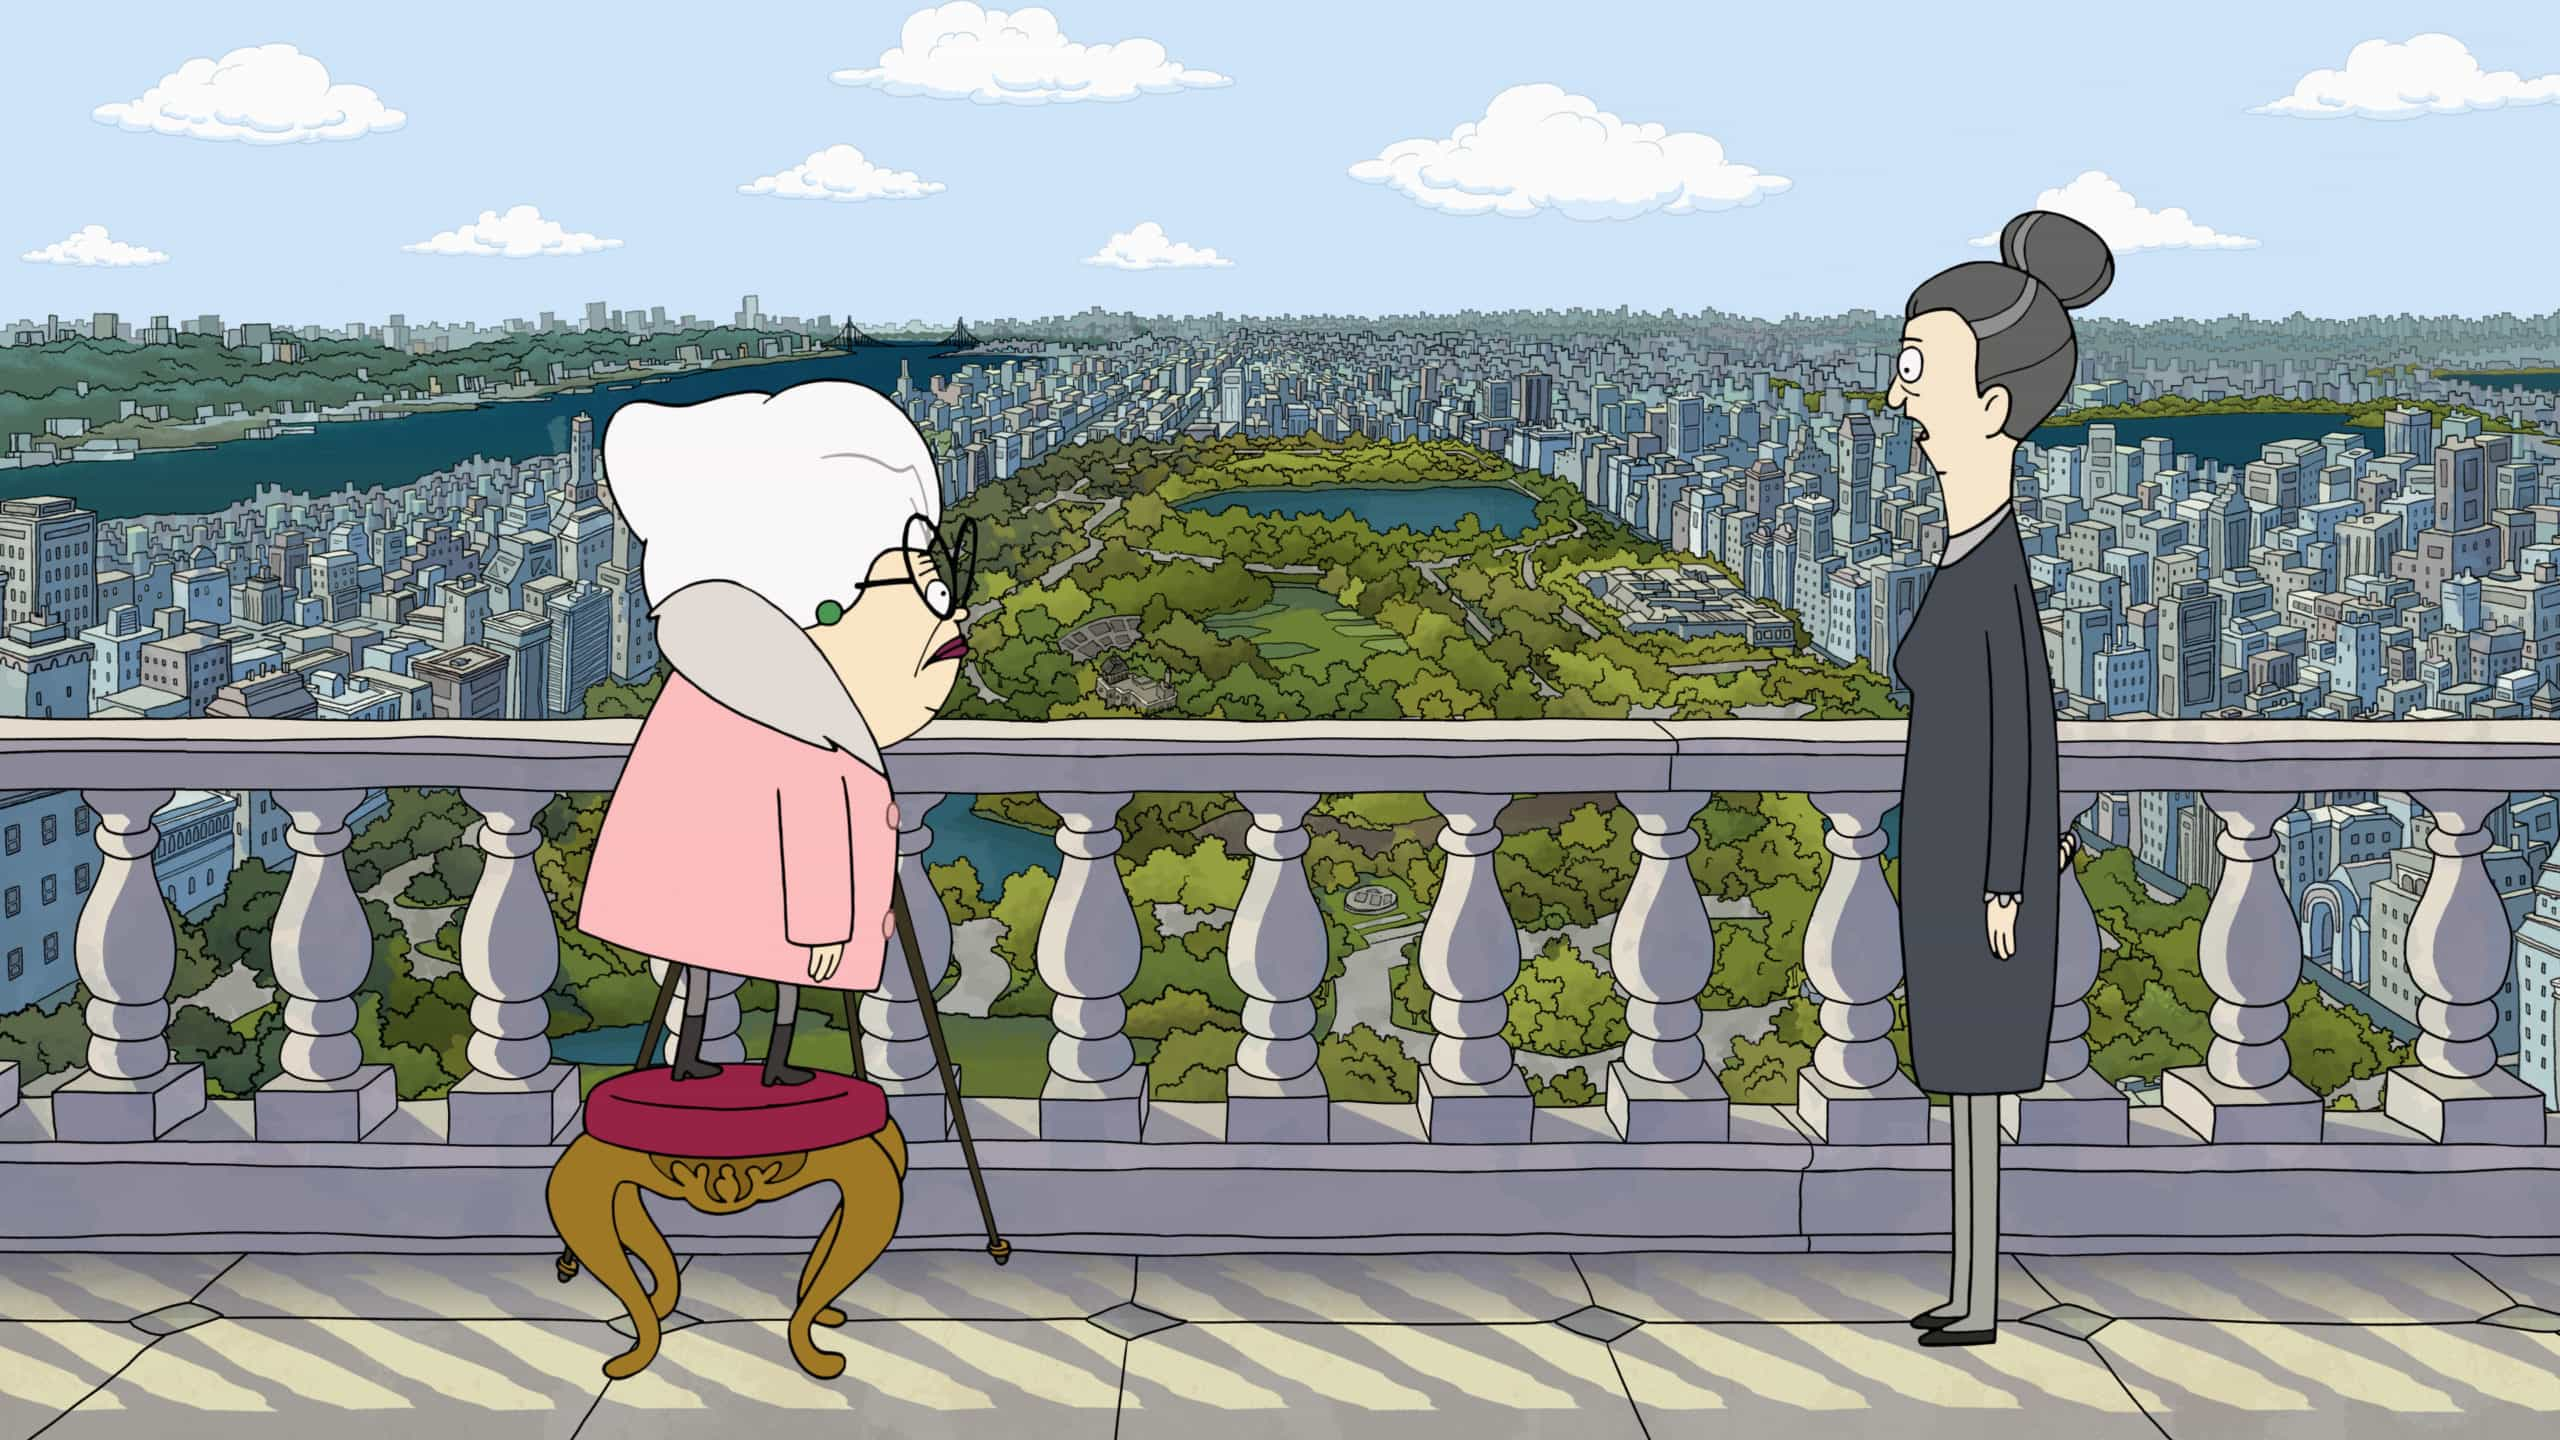 The characters voiced by Daveed Diggs and Stanley Tucci act out their own little remake of The Devil Wears Prada in Central Park.